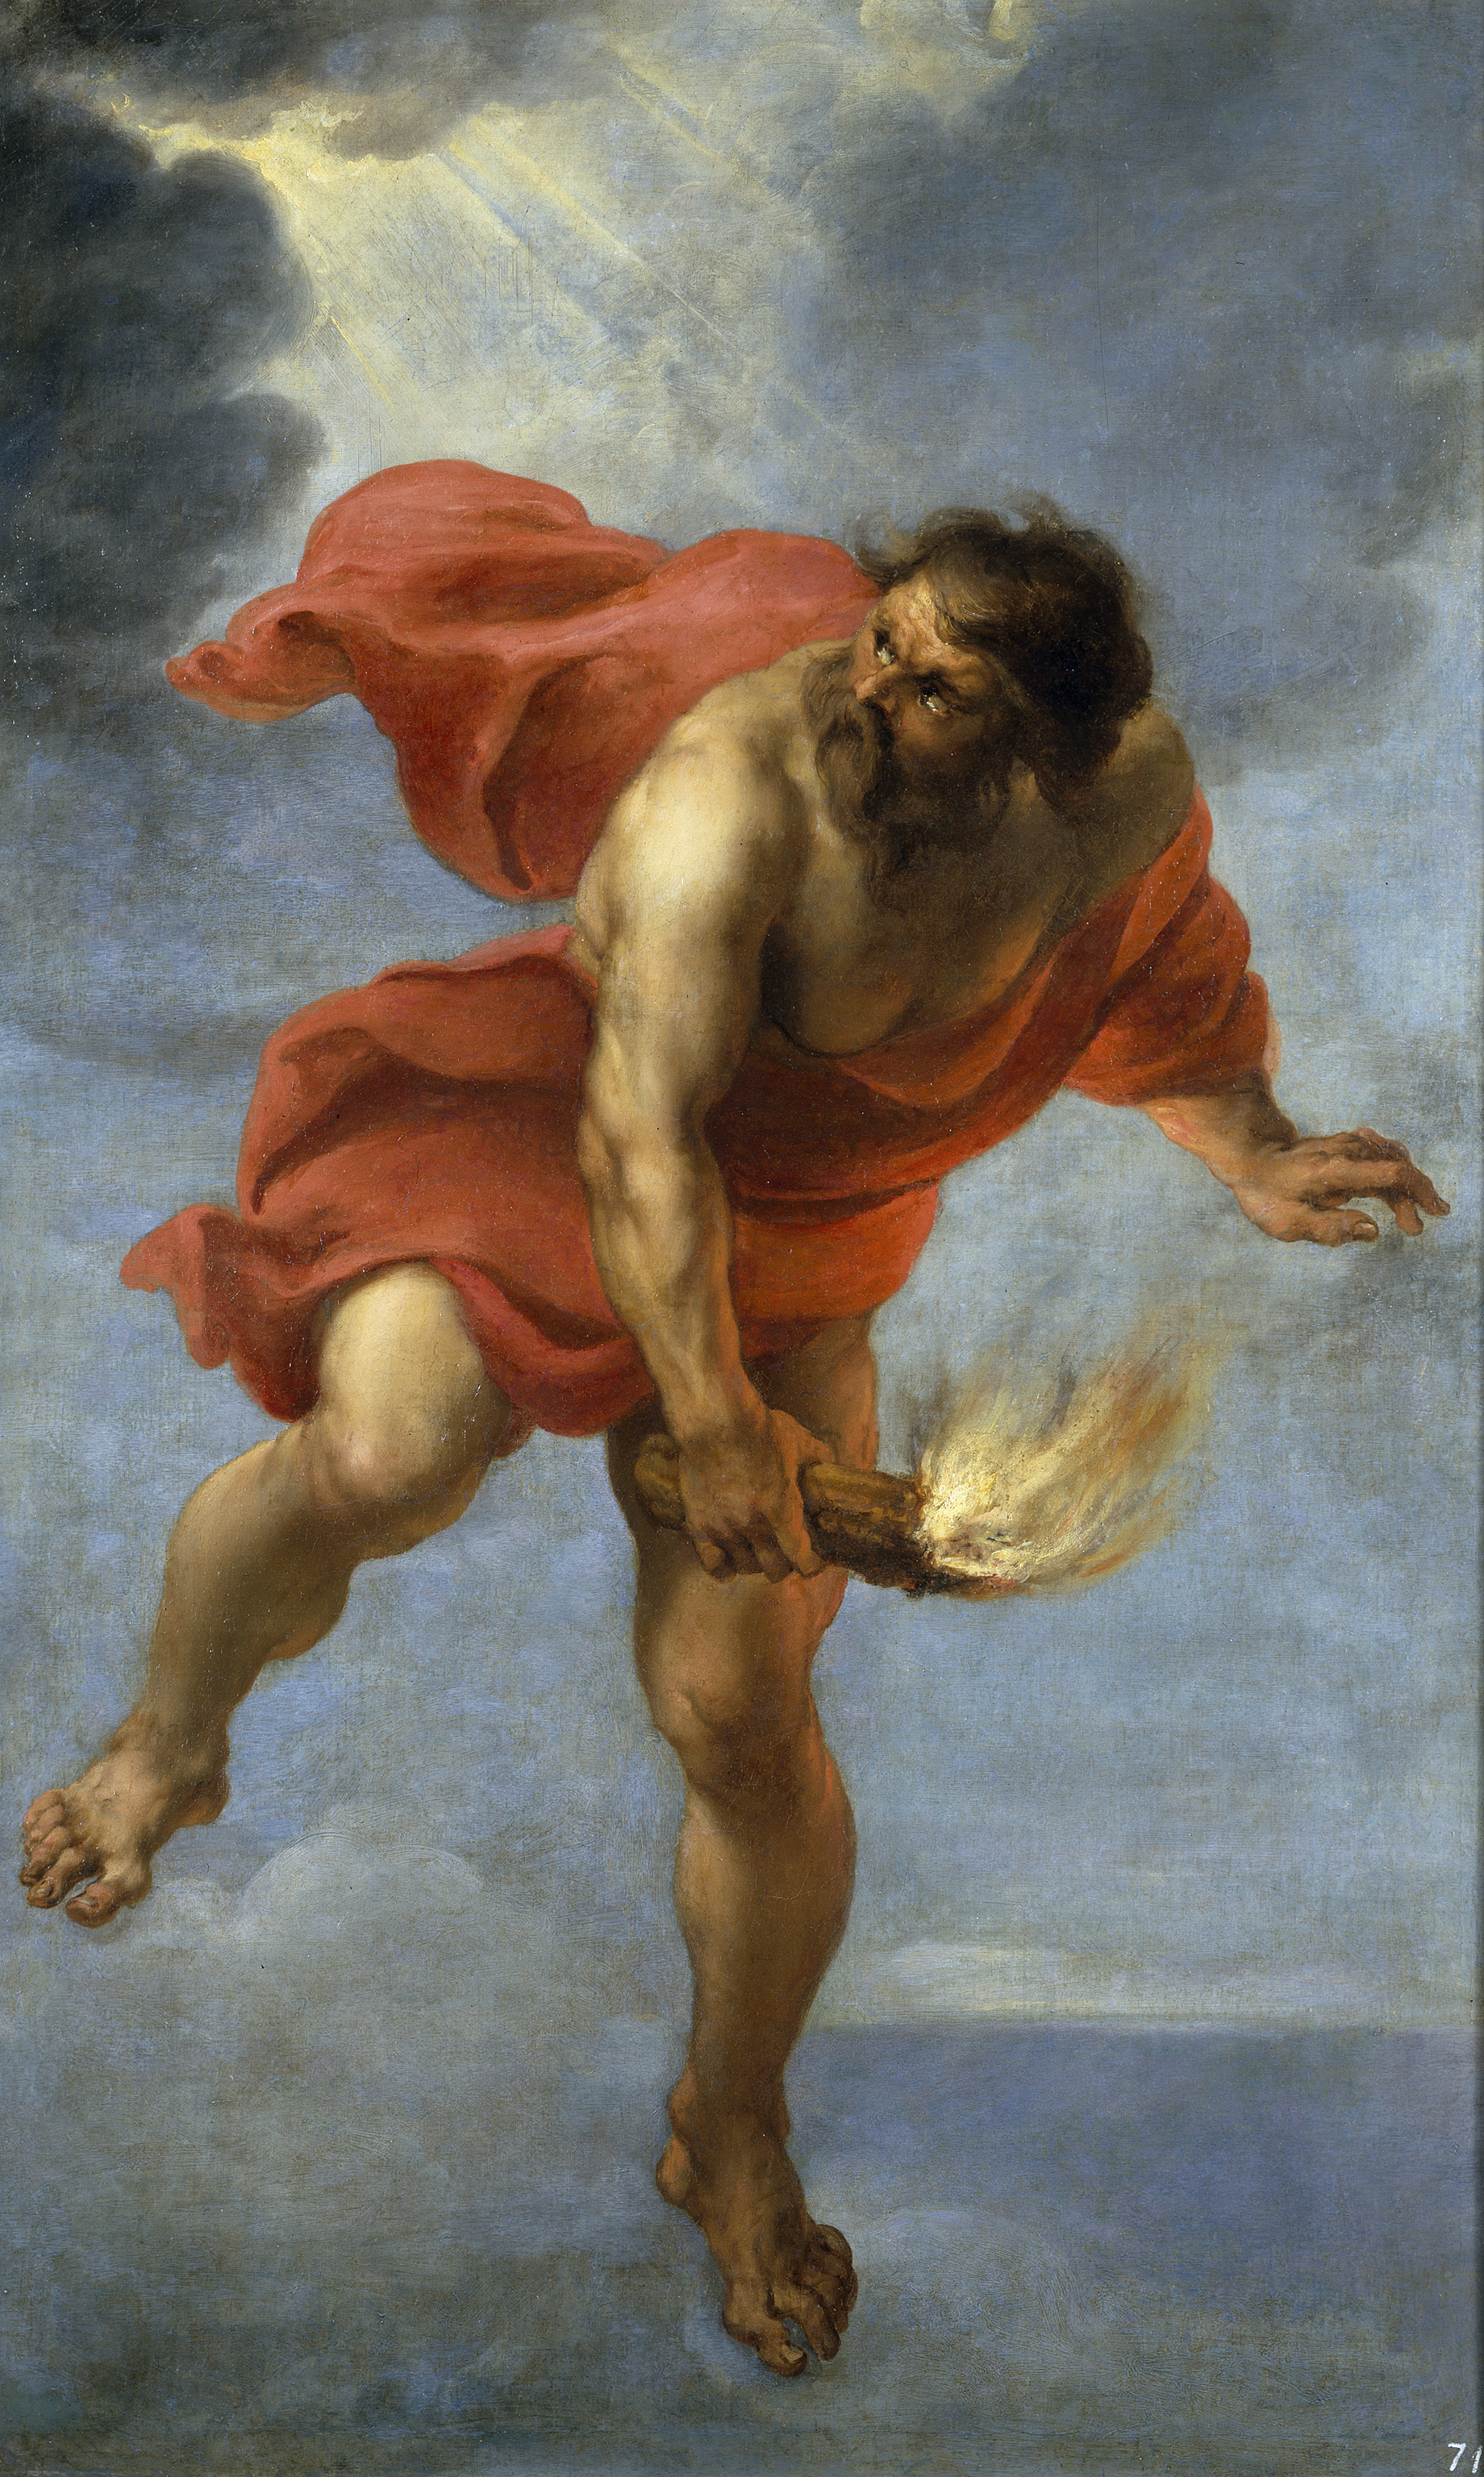 comparision of greek myth of prometheus The biblical and greek creation stories, by israel drazin a comparison of the similarities and differences between the bibilical account of creation and greek creation stories, and how an.